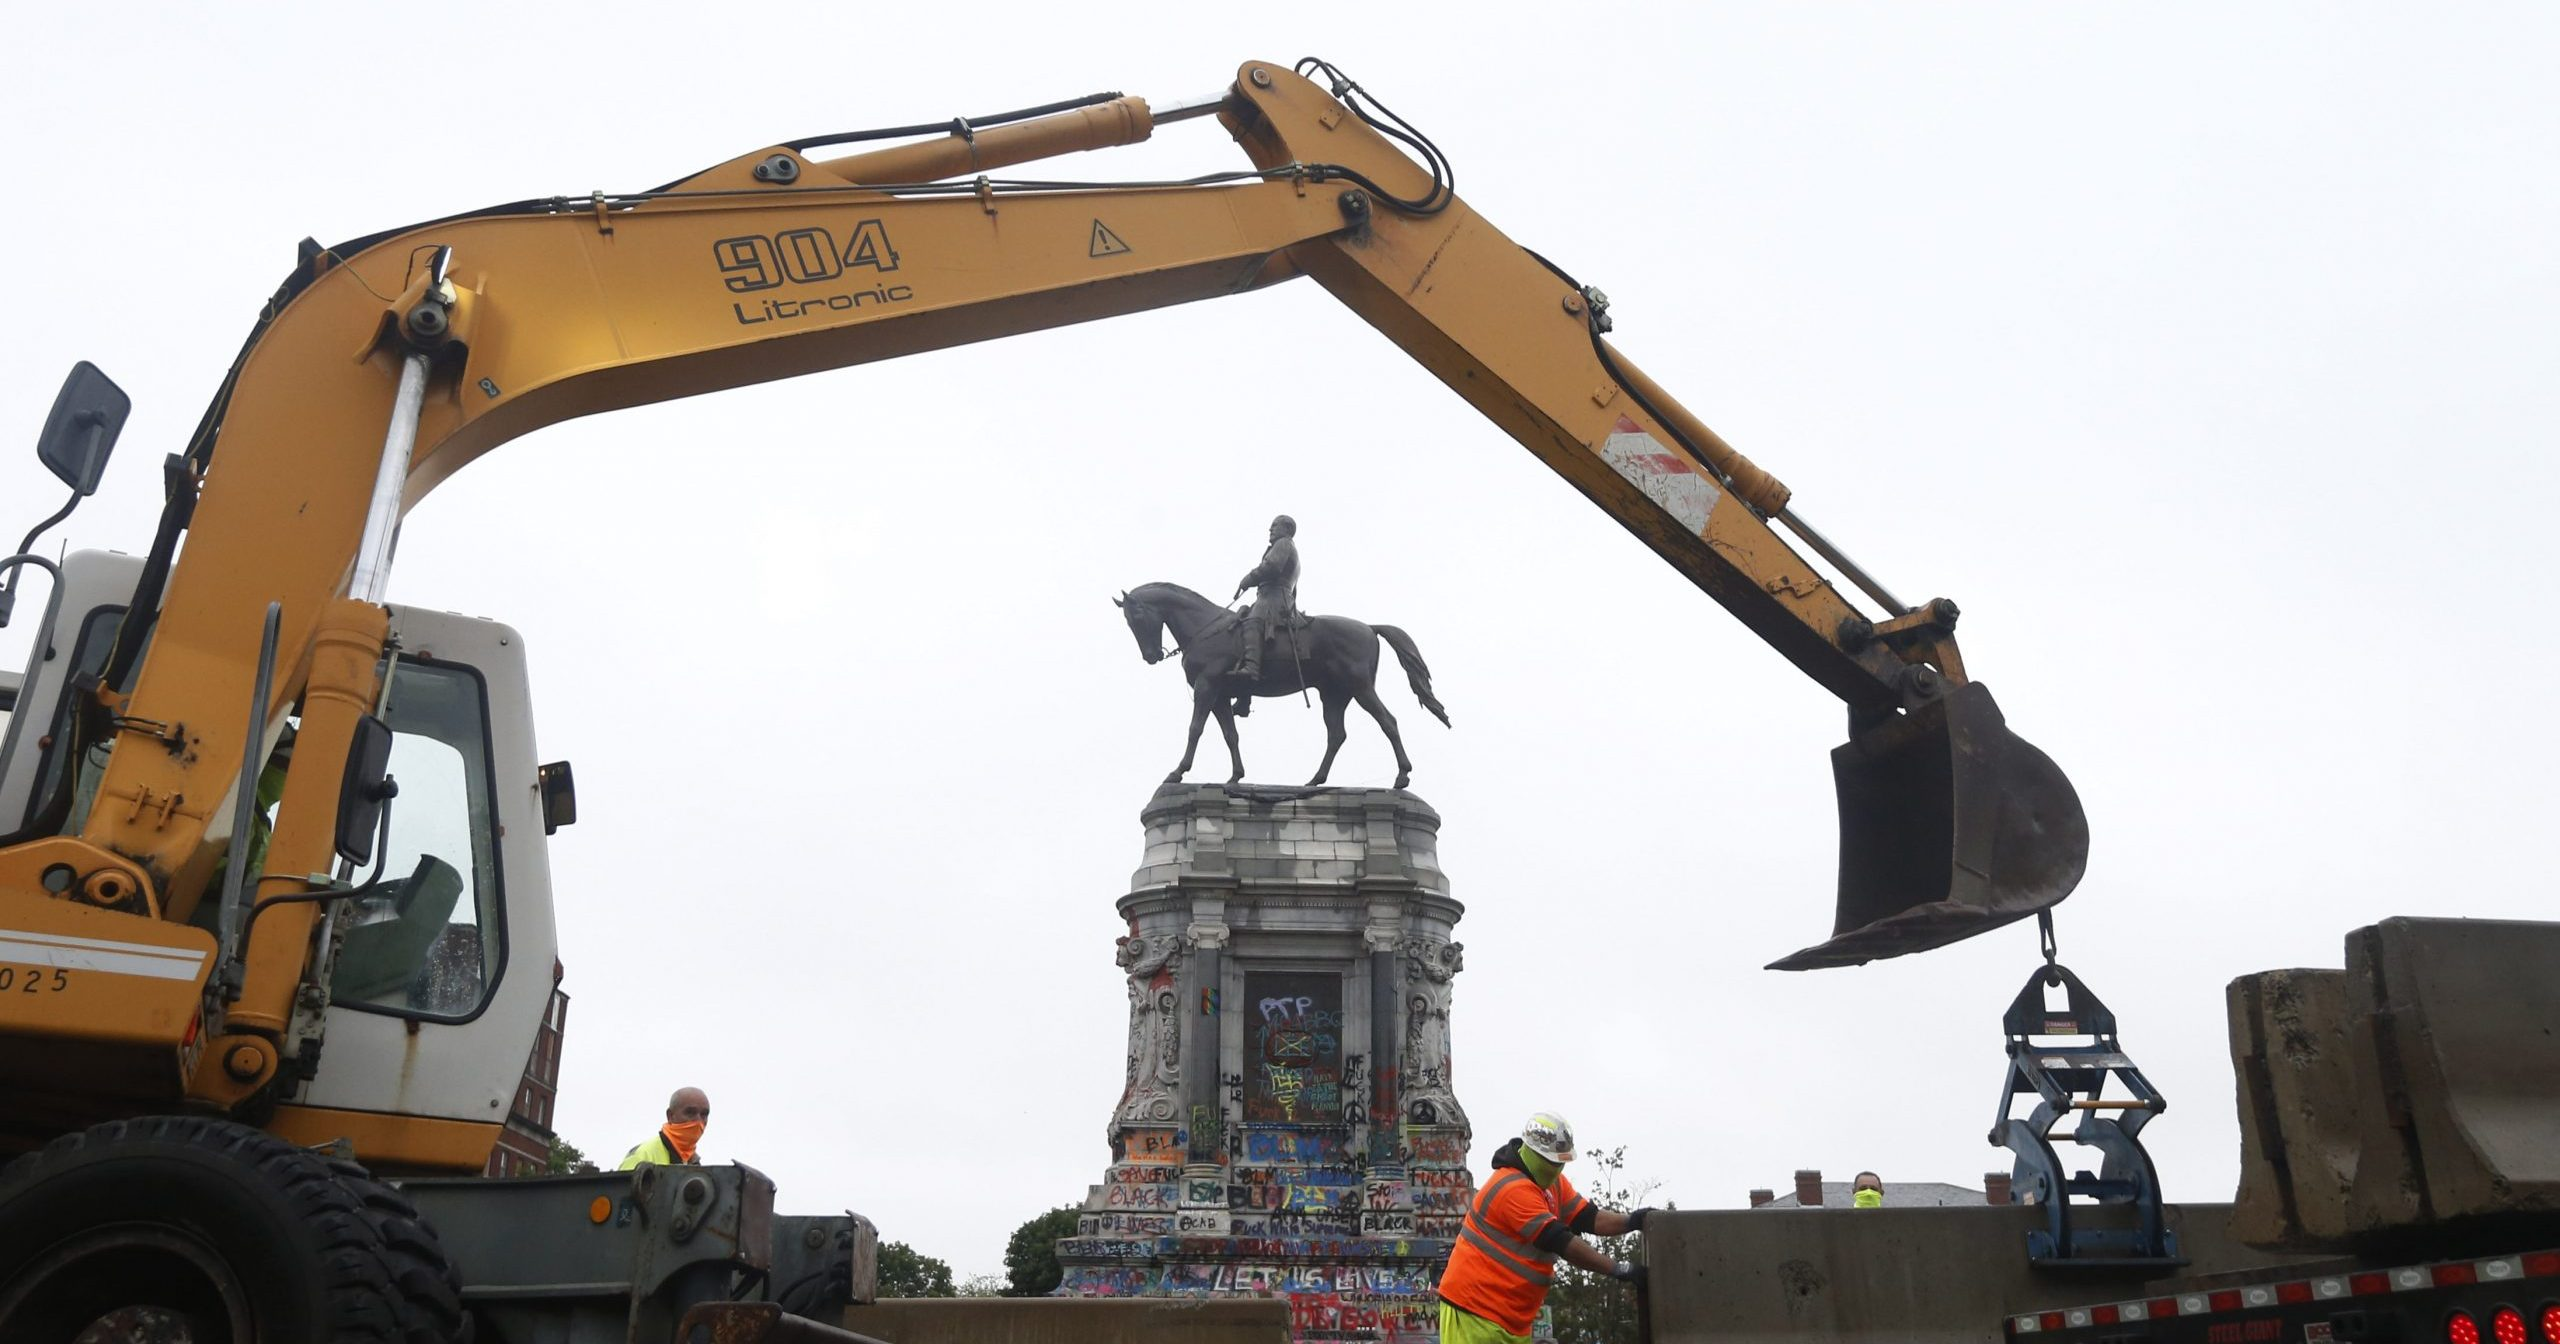 Workers for the Virginia Department of General Services install protective concrete barriers around the statue of Confederate General Robert E. Lee on Monument Avenue on June 17, 2020, in Richmond, Virginia.